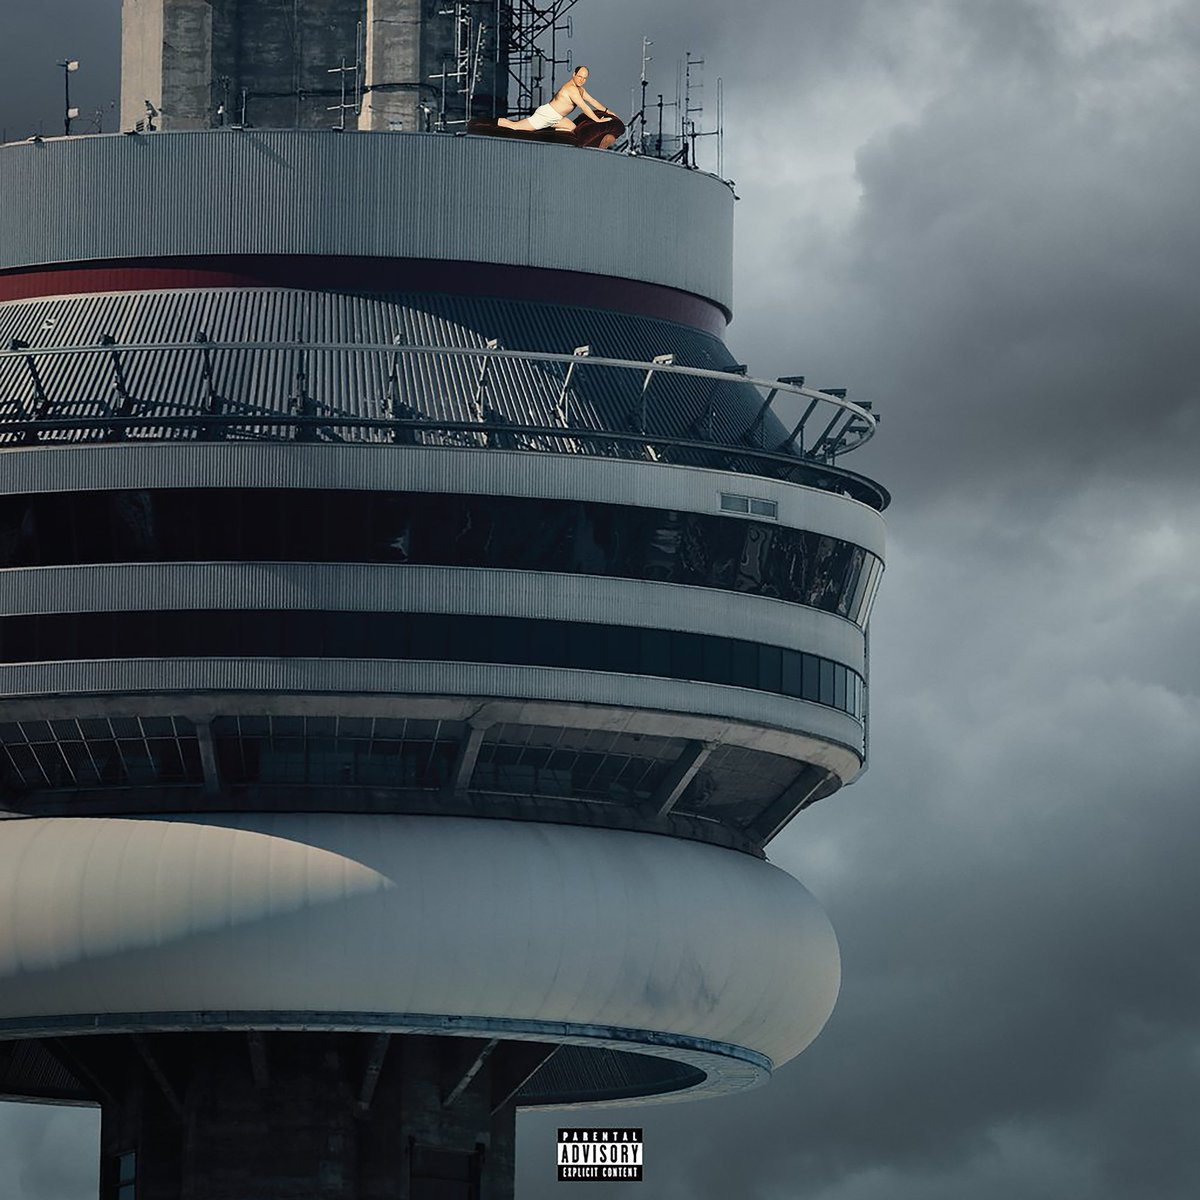 The Best Meme of the Week Goes to Drake's Views